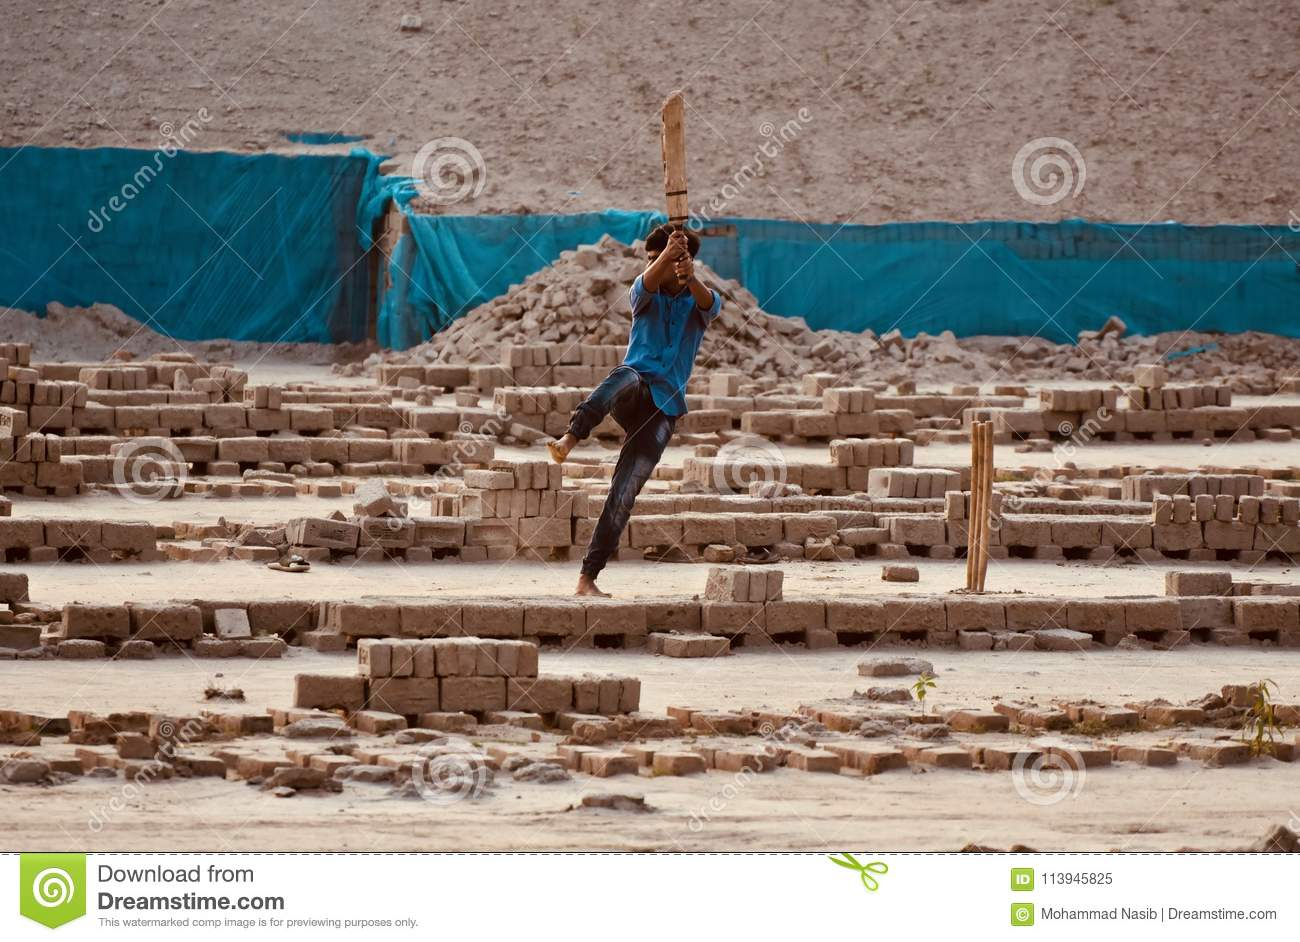 Young boy is playing cricket around a bricks field in Bangladesh